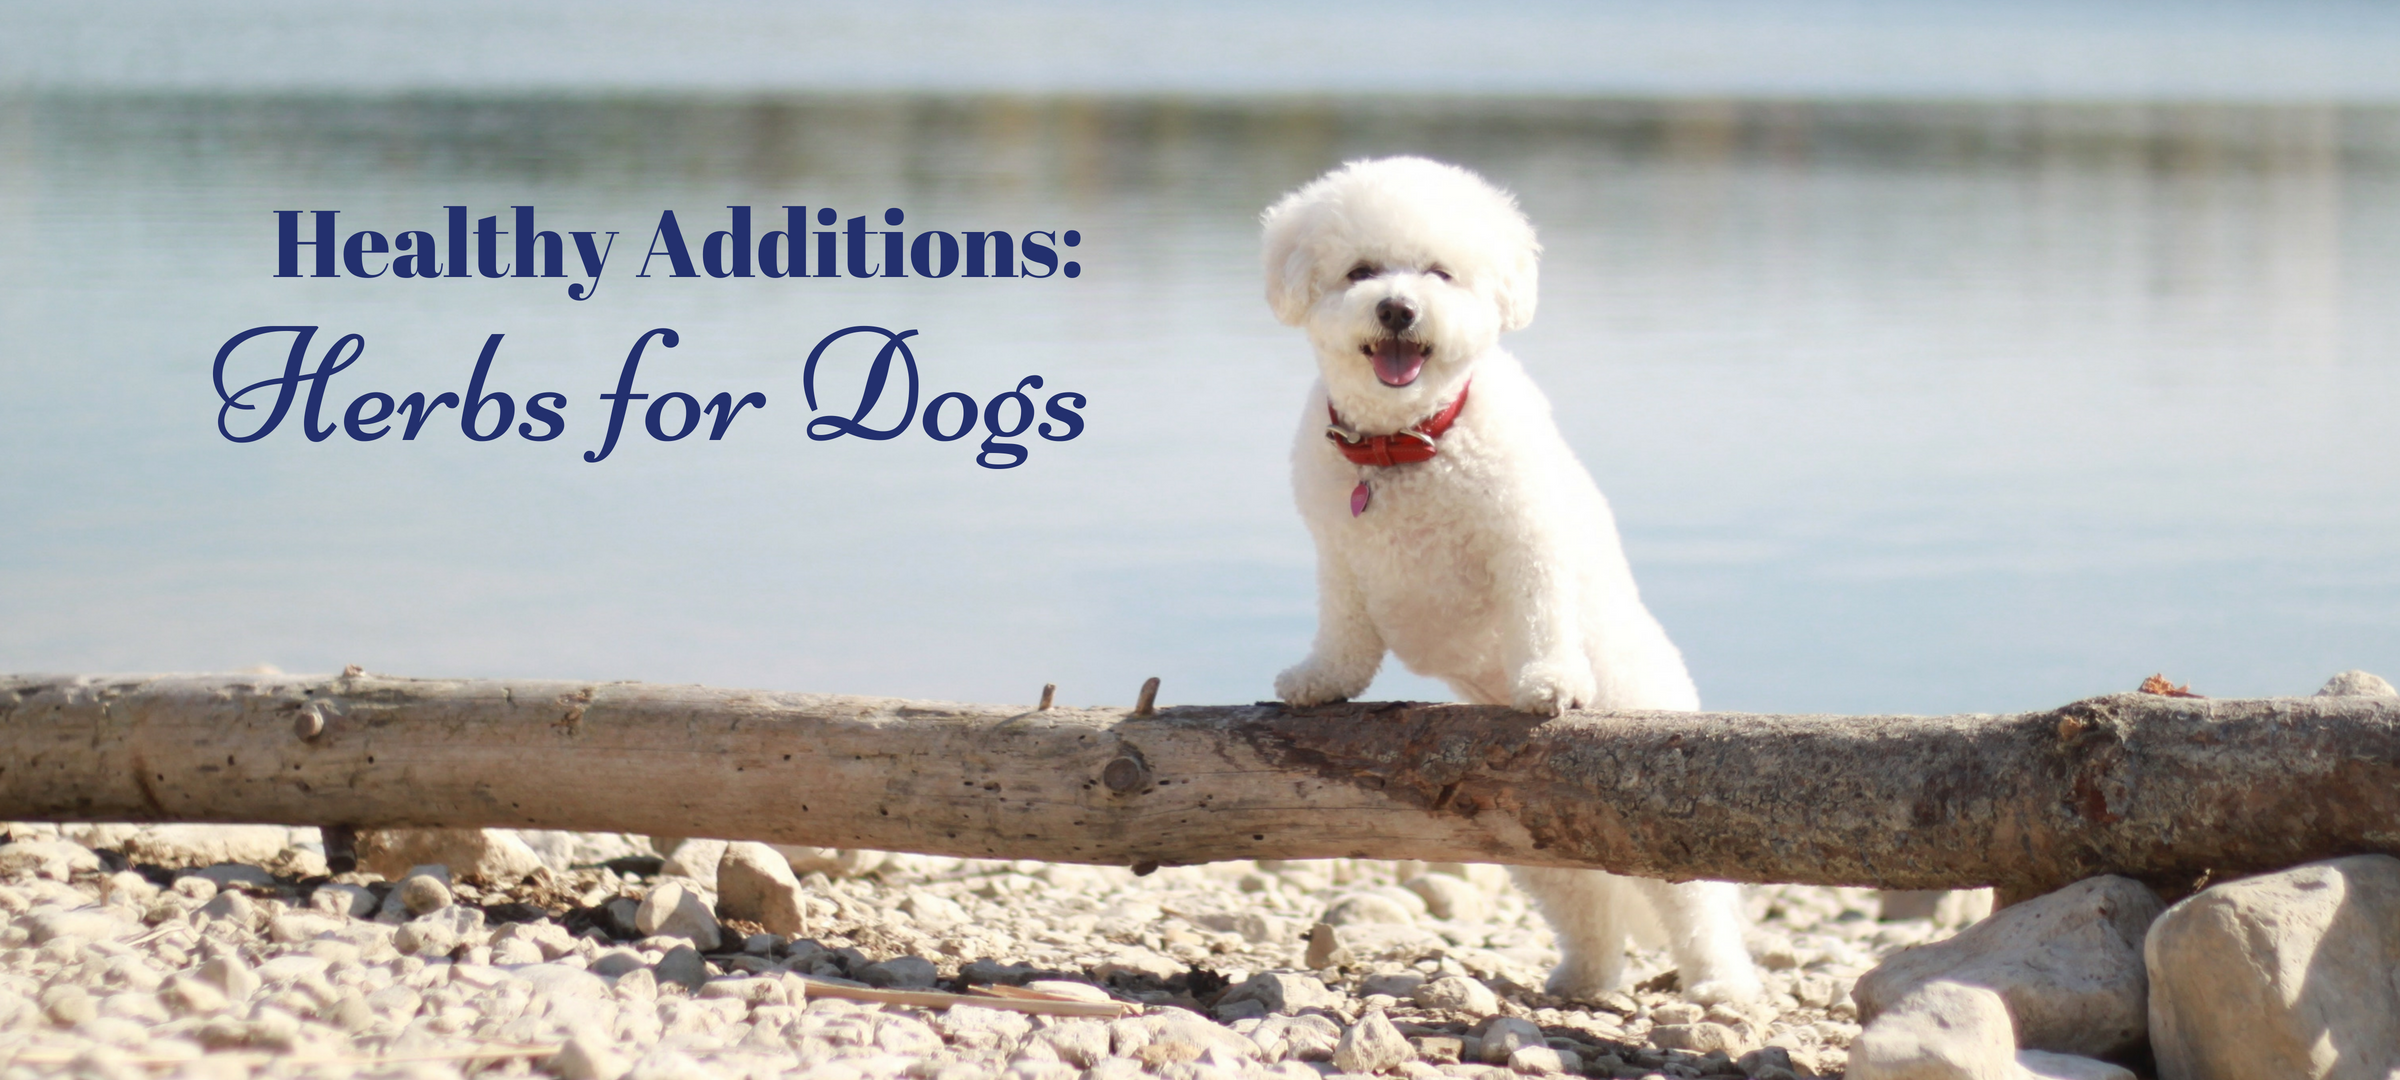 Healthy Additions: Herbs for Dogs - My Satisfied Dog